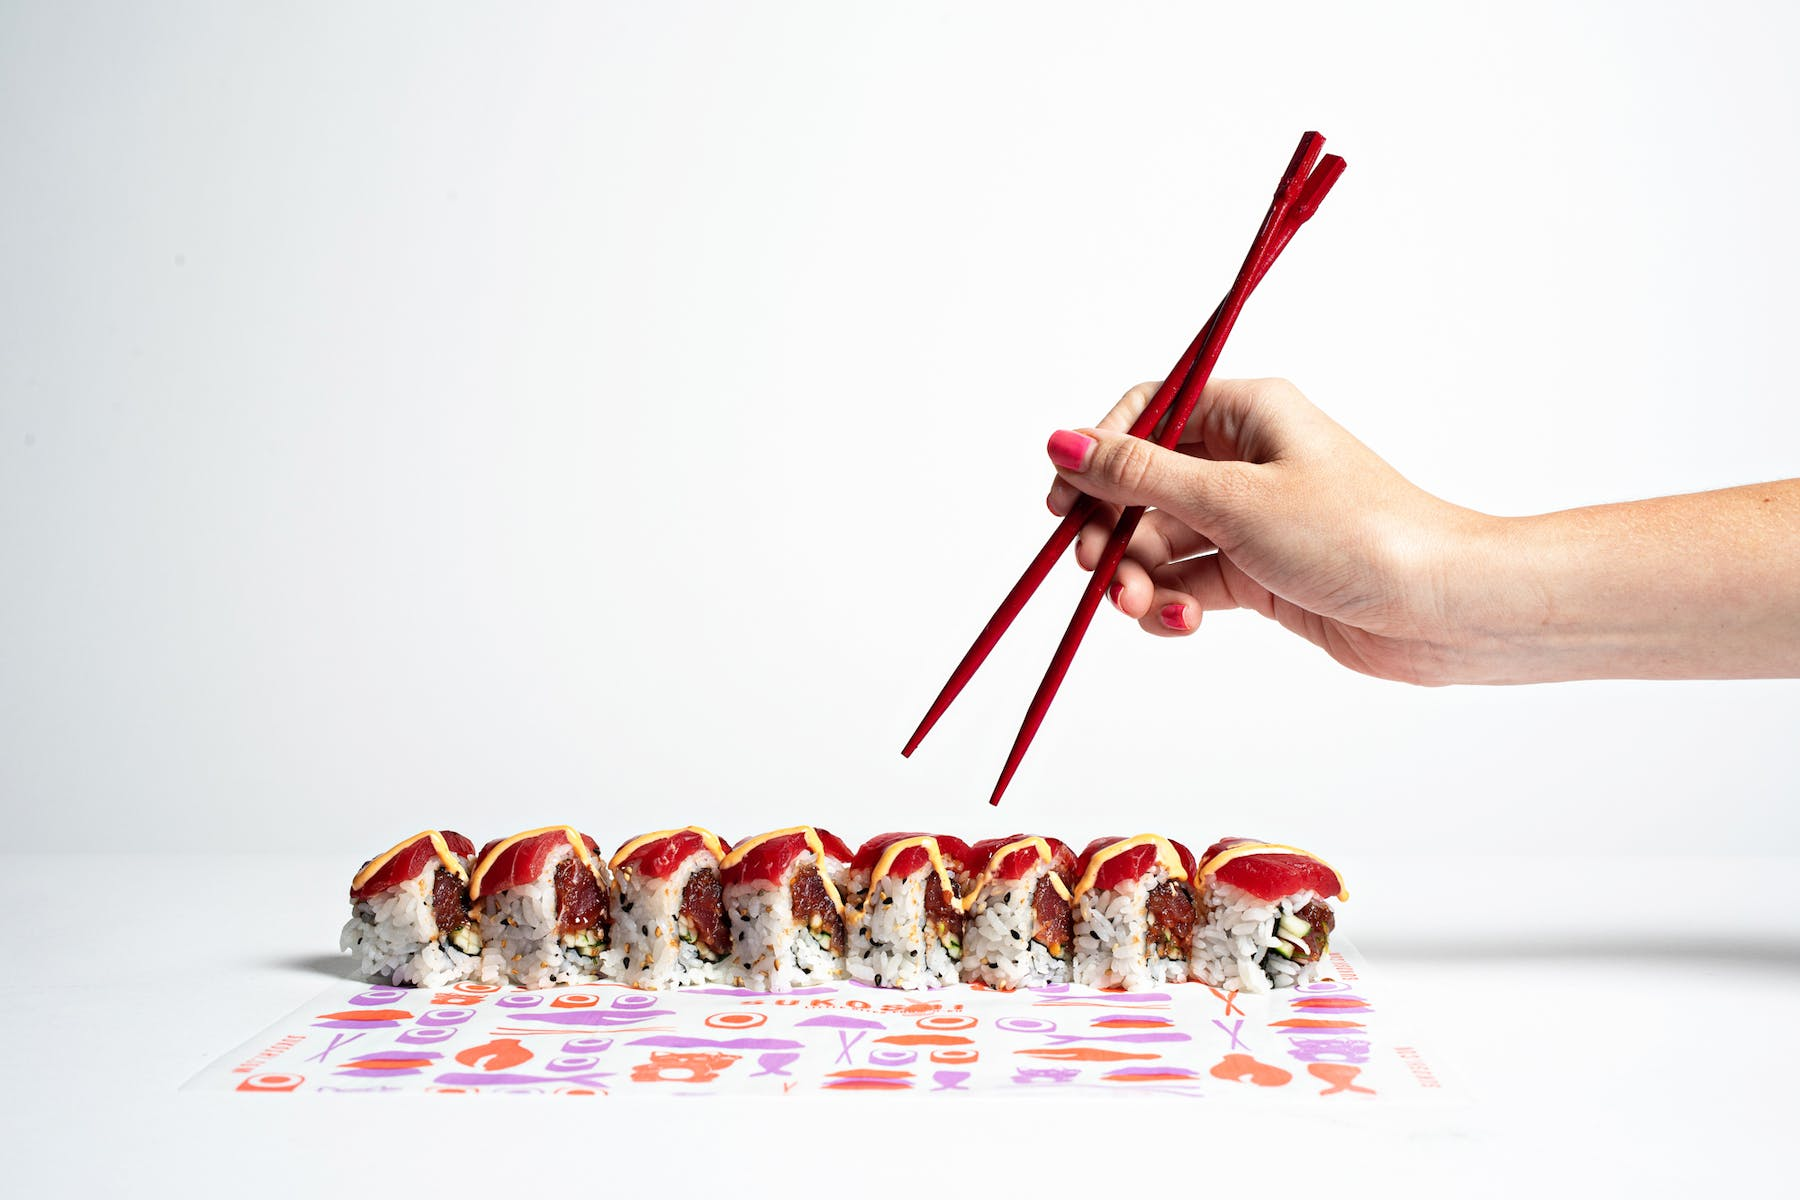 Sushi roll with chopsticks ready to indulge